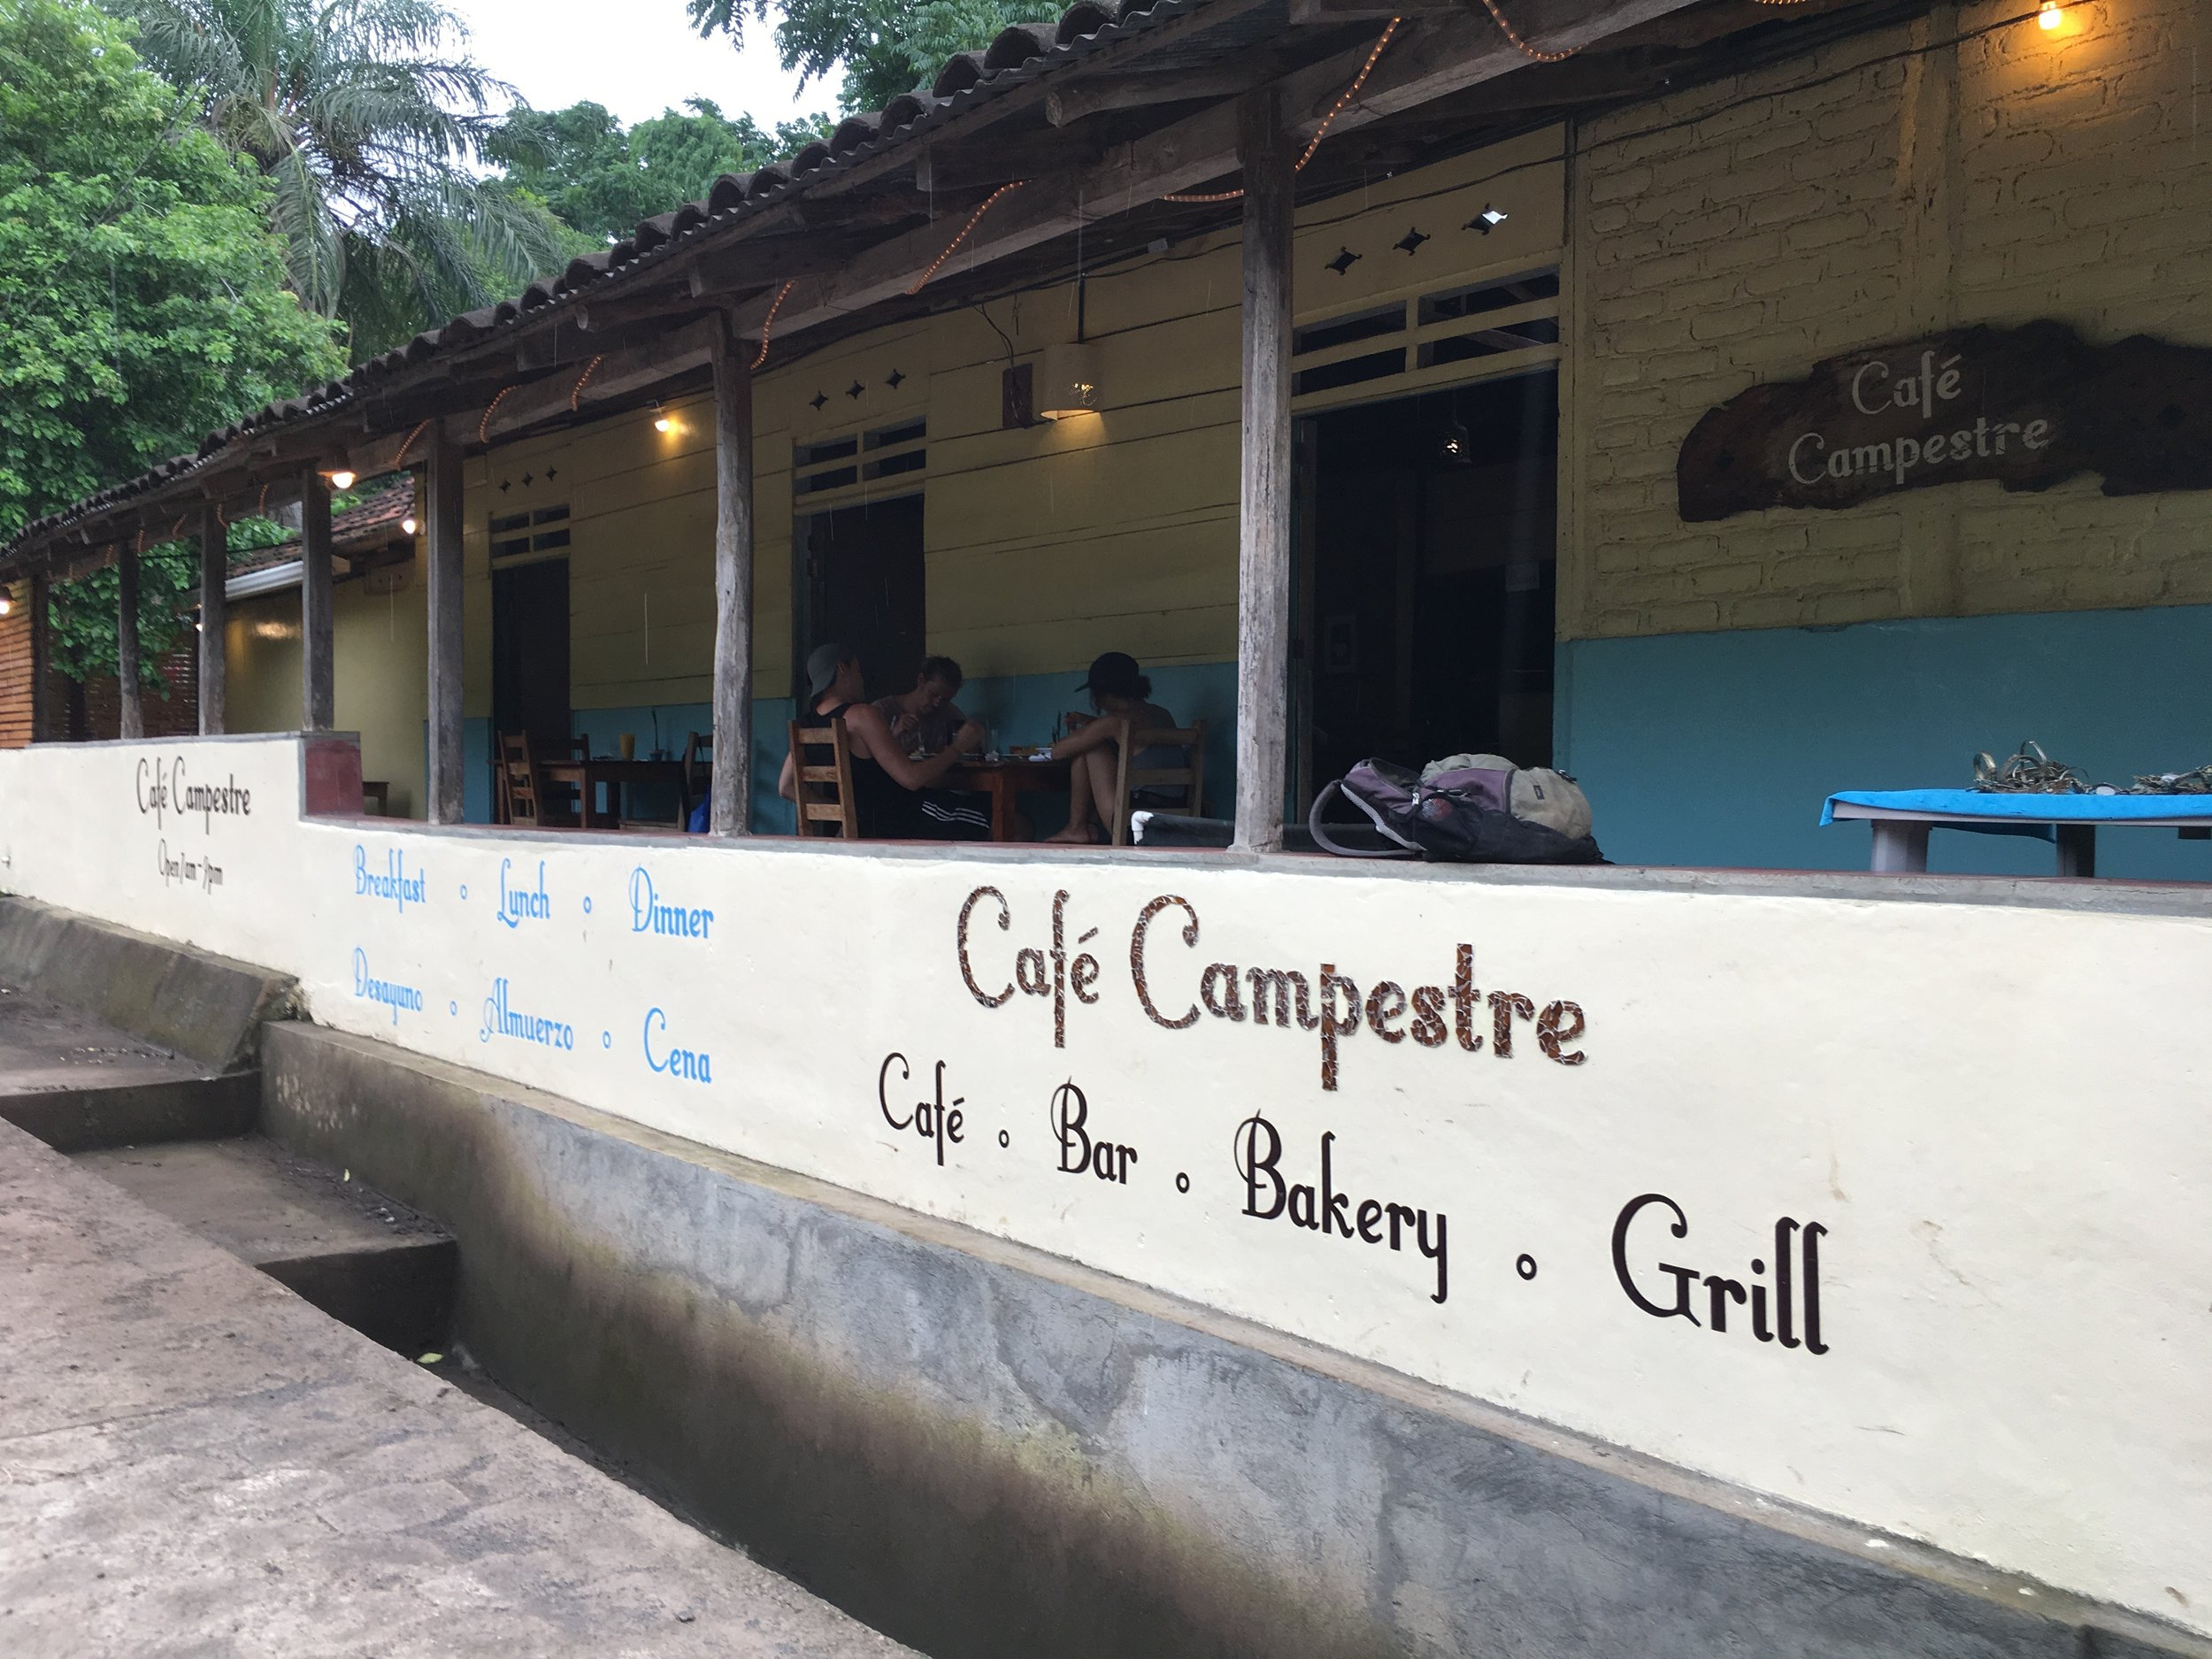 Cafe Campestre for late lunch